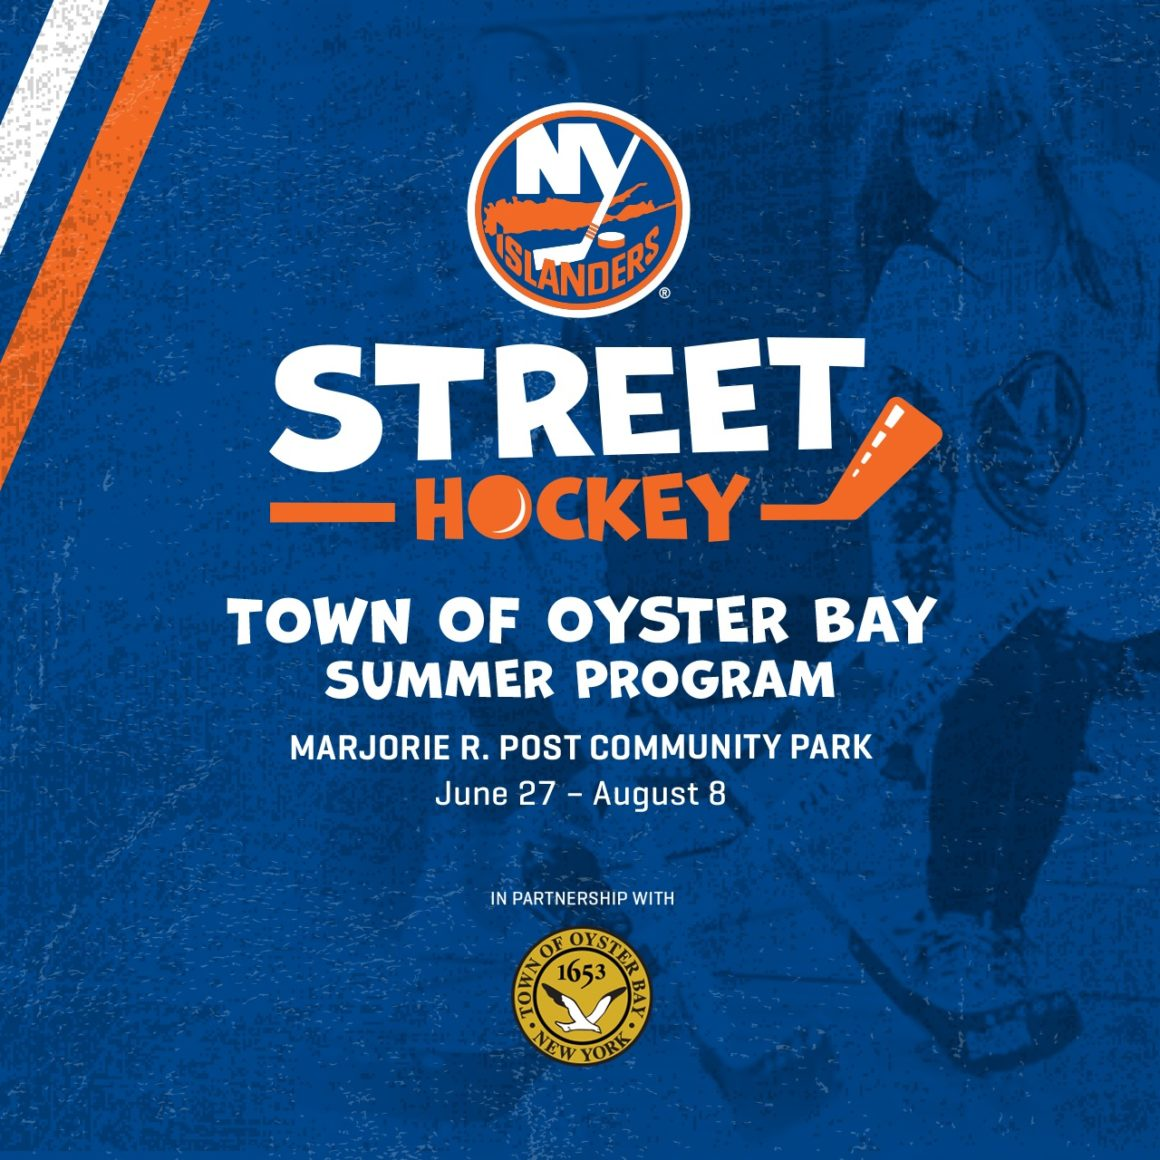 Town Partners with NY Islanders for Street Hockey Summer Program for Children